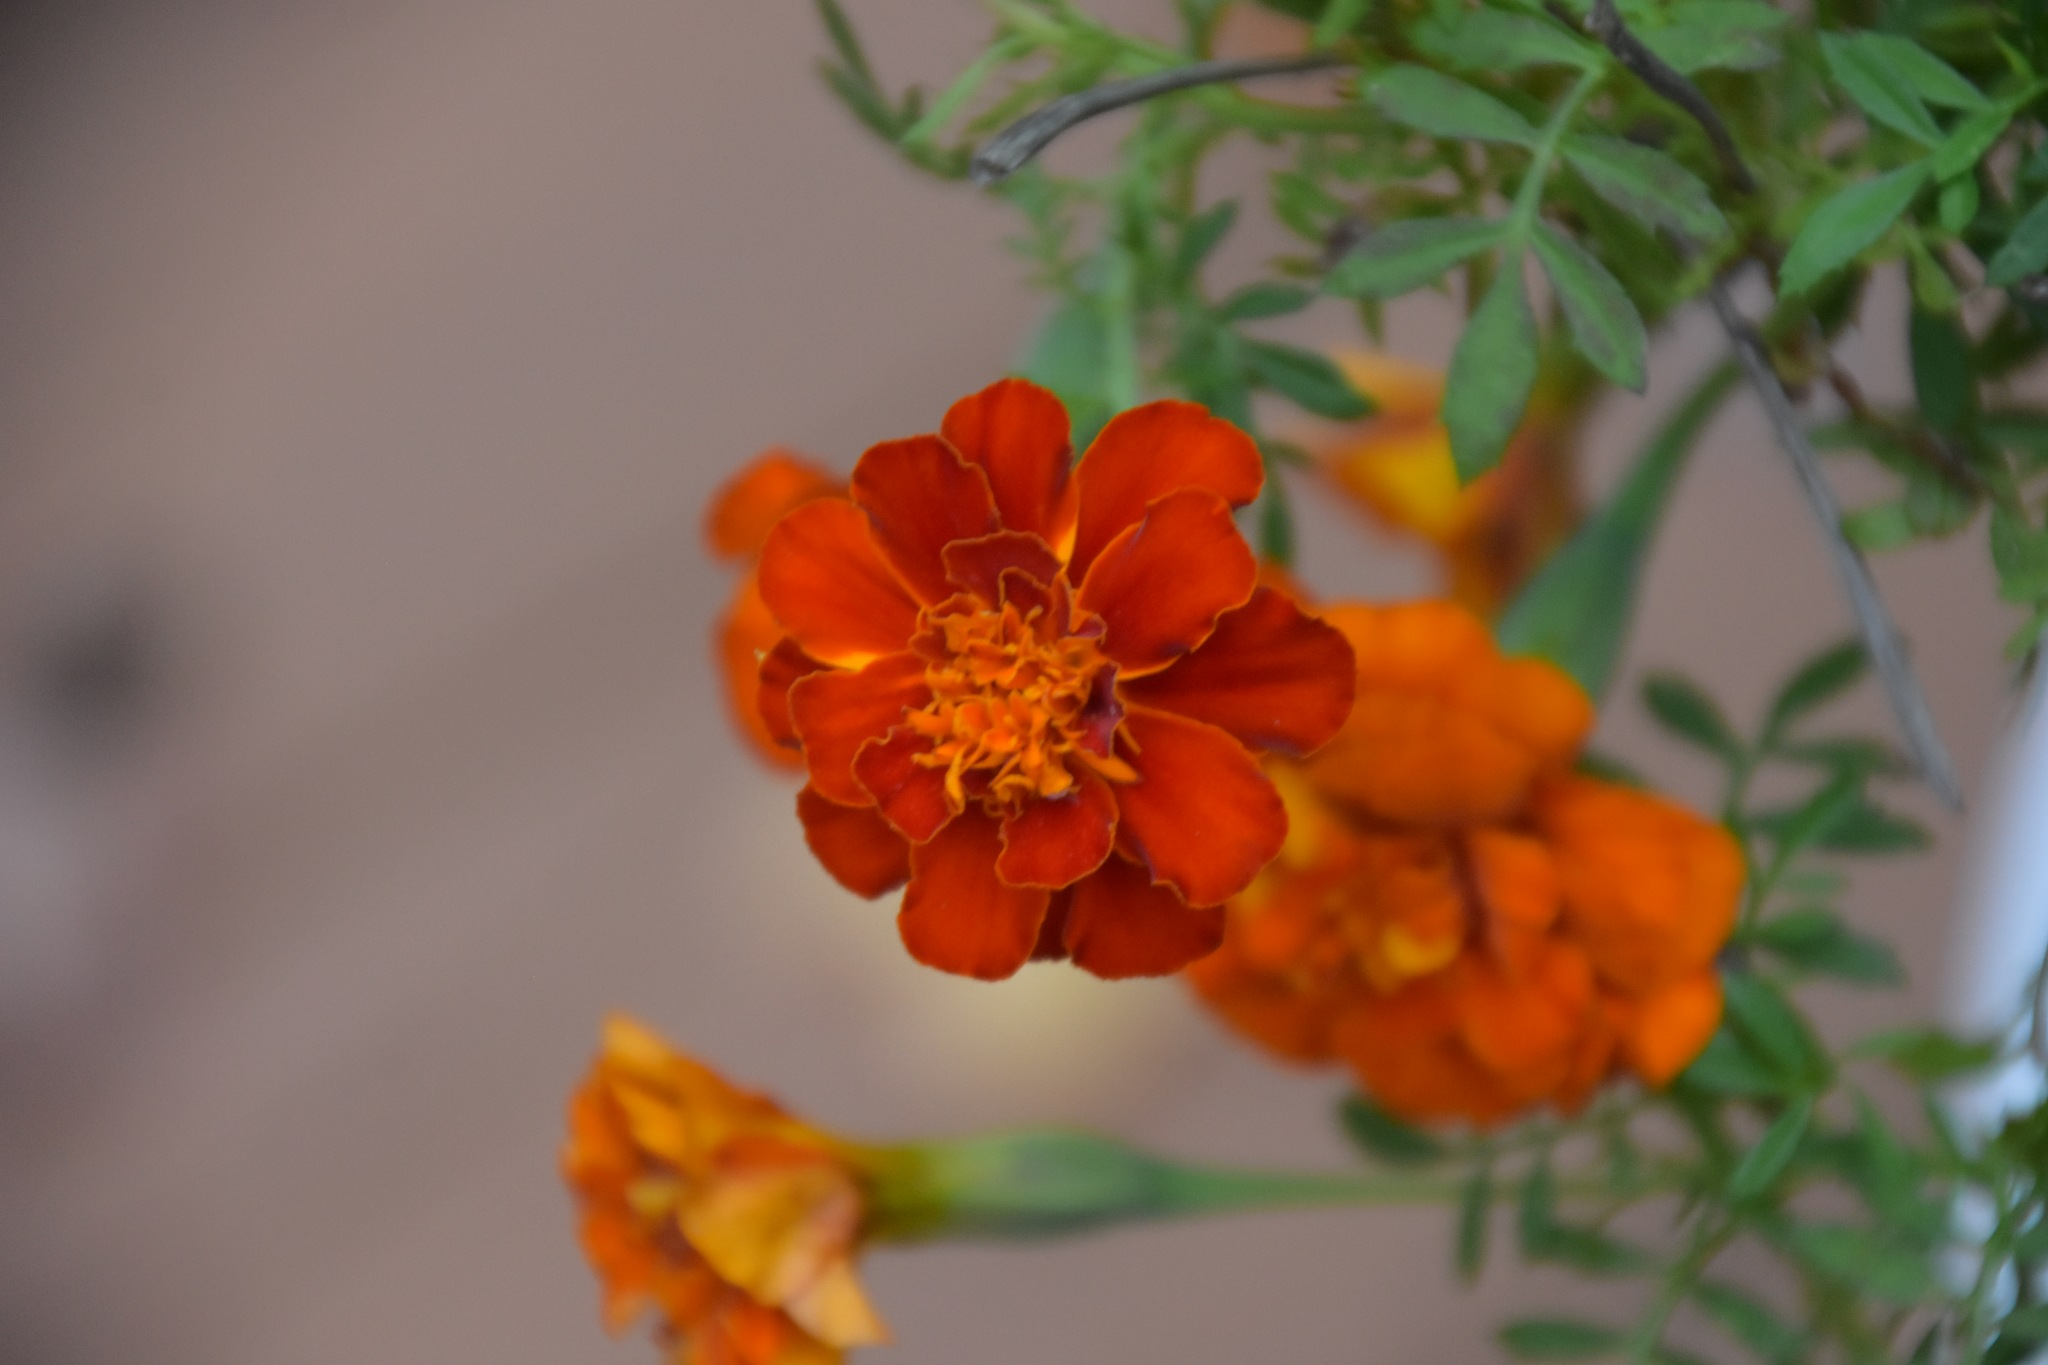 Autumn Blooms on Our Porch 2 by Greg Knott